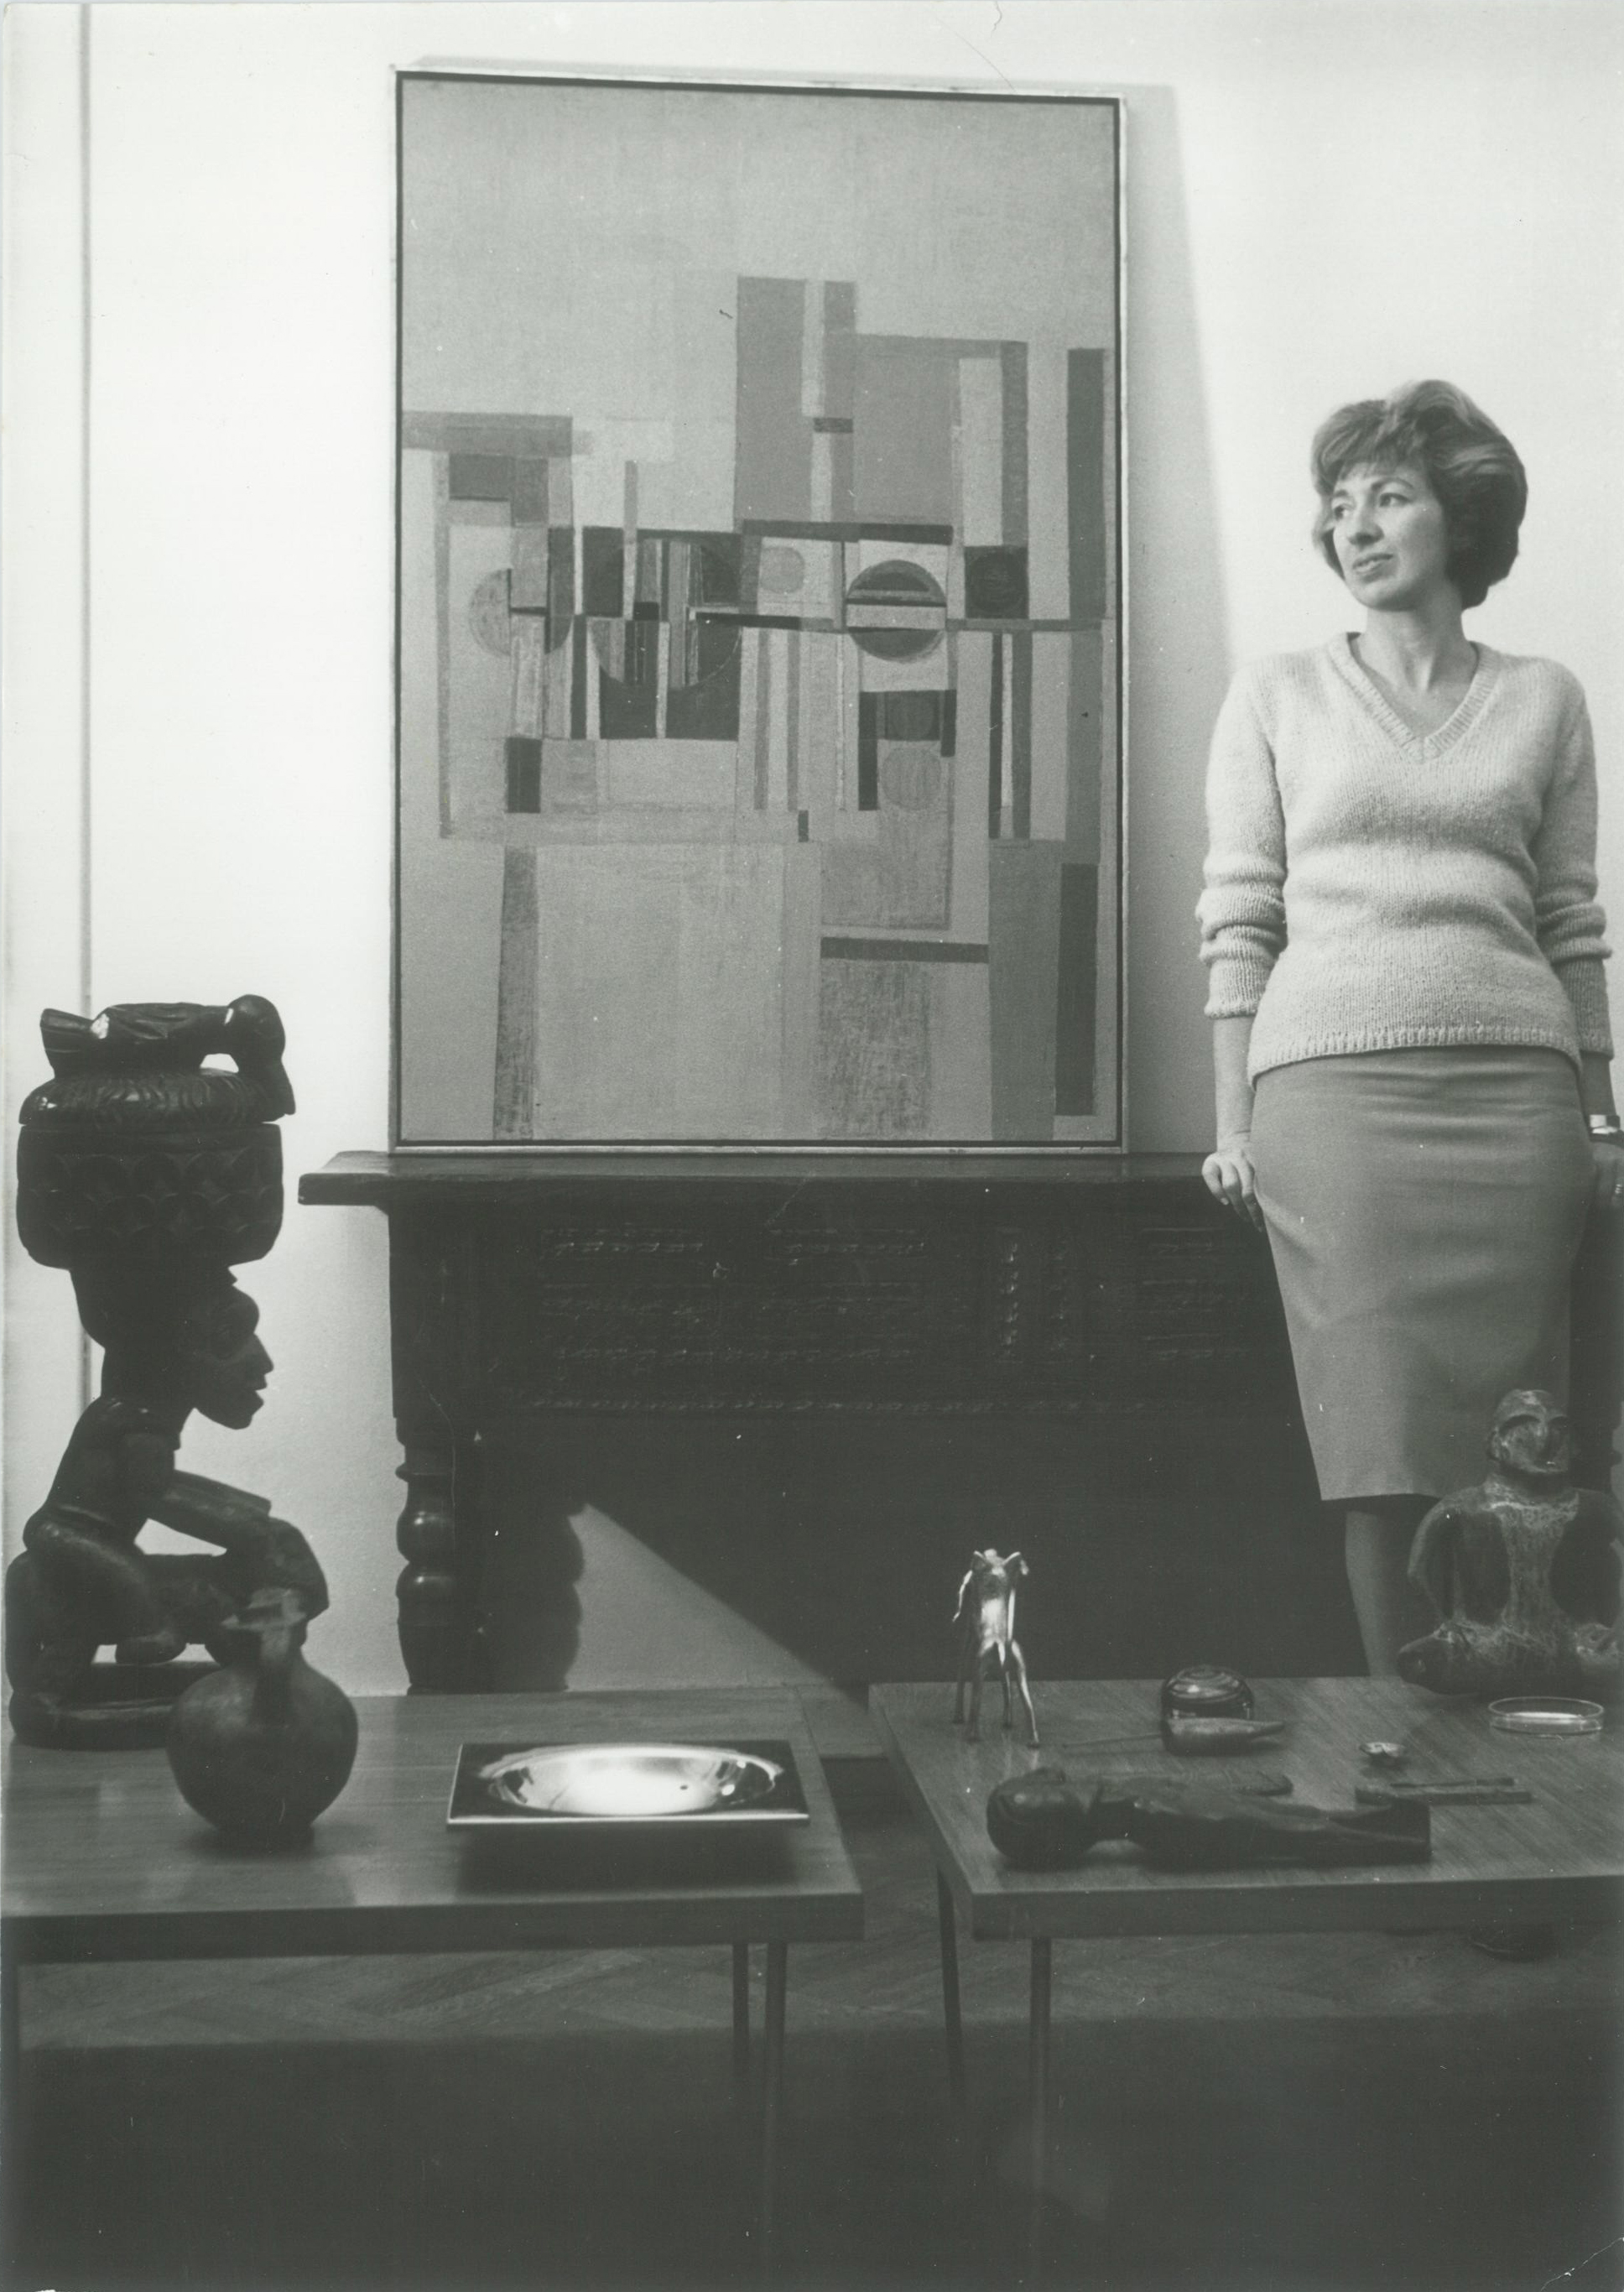 Sarah Grilo in her studio with one of her paintings. Buenos Aires, ca. 1950  Photo: © José Antonio Fernández-Muro